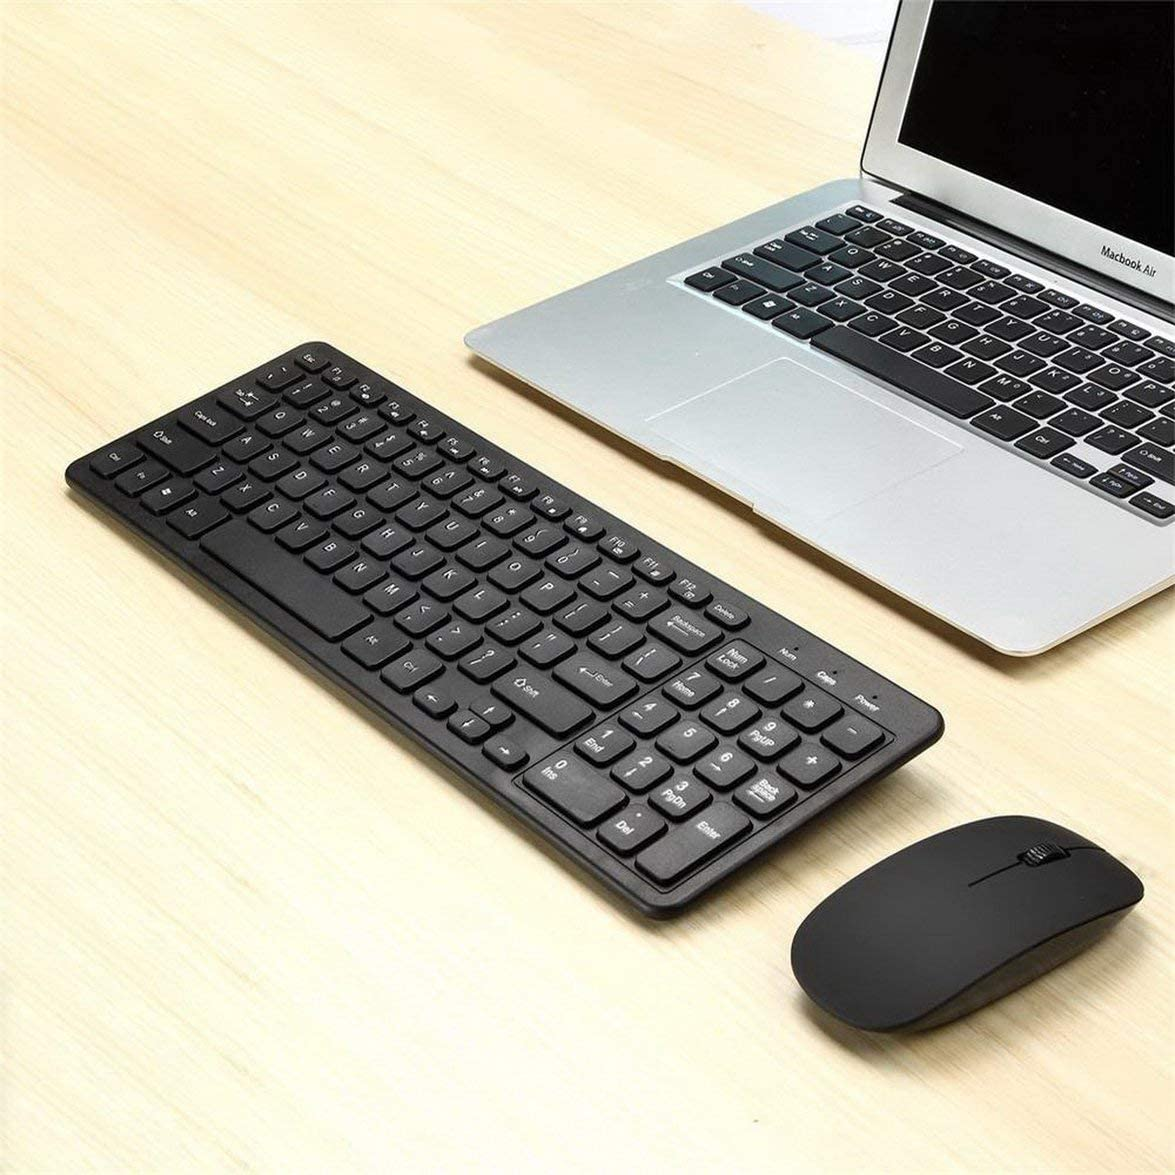 Sylvialuca Wireless Keyboard and Mouse Combo Kit for PC Desktop Laptop Classic Office Set